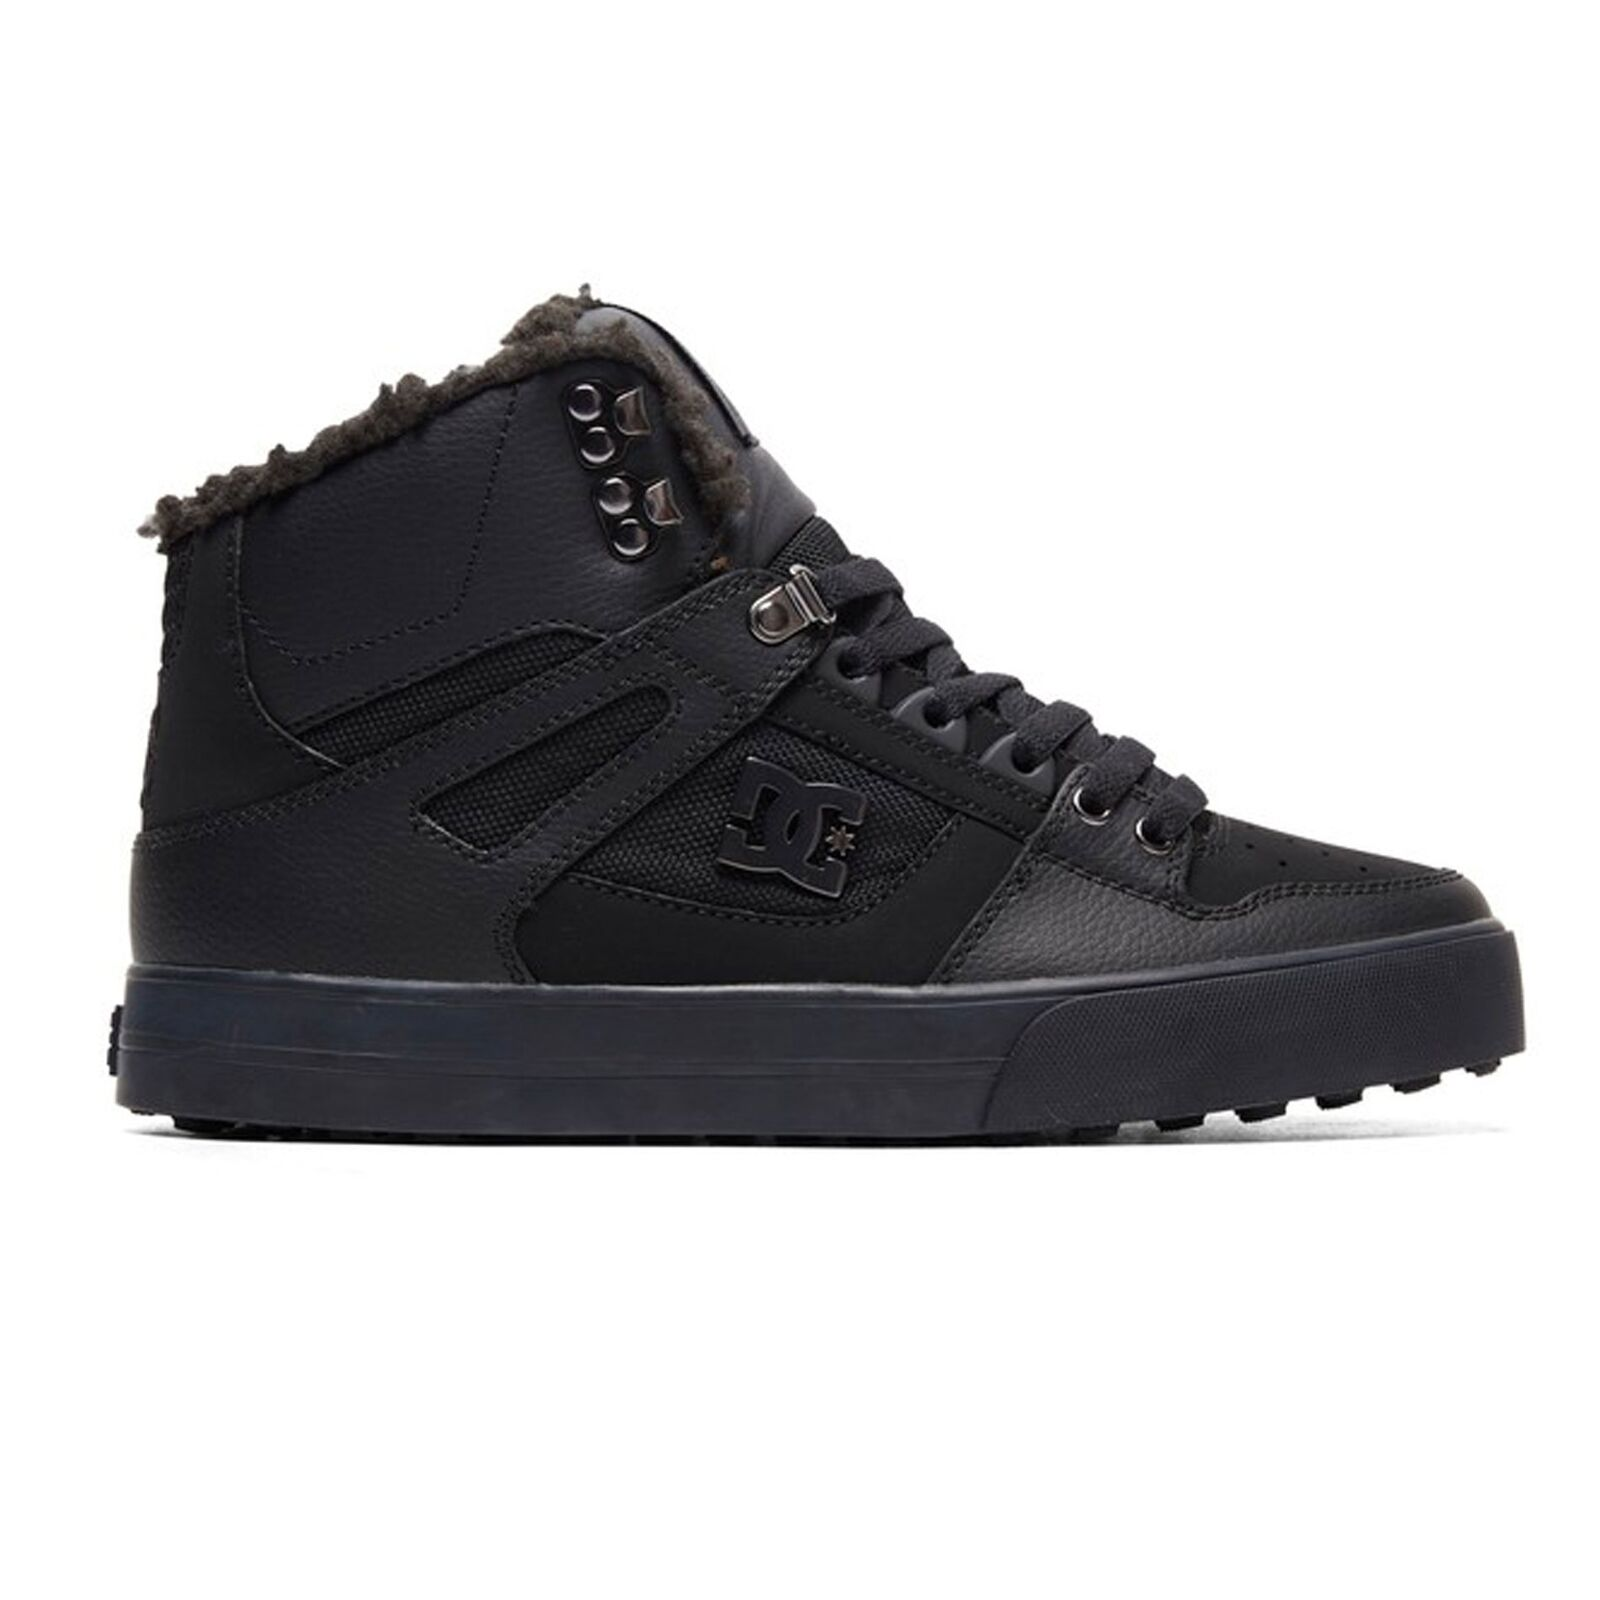 DC-Pure High-top WC WNT CELEBRE CELEBRE CELEBRE 400047 Black/Black/Black (3bk) 52effa